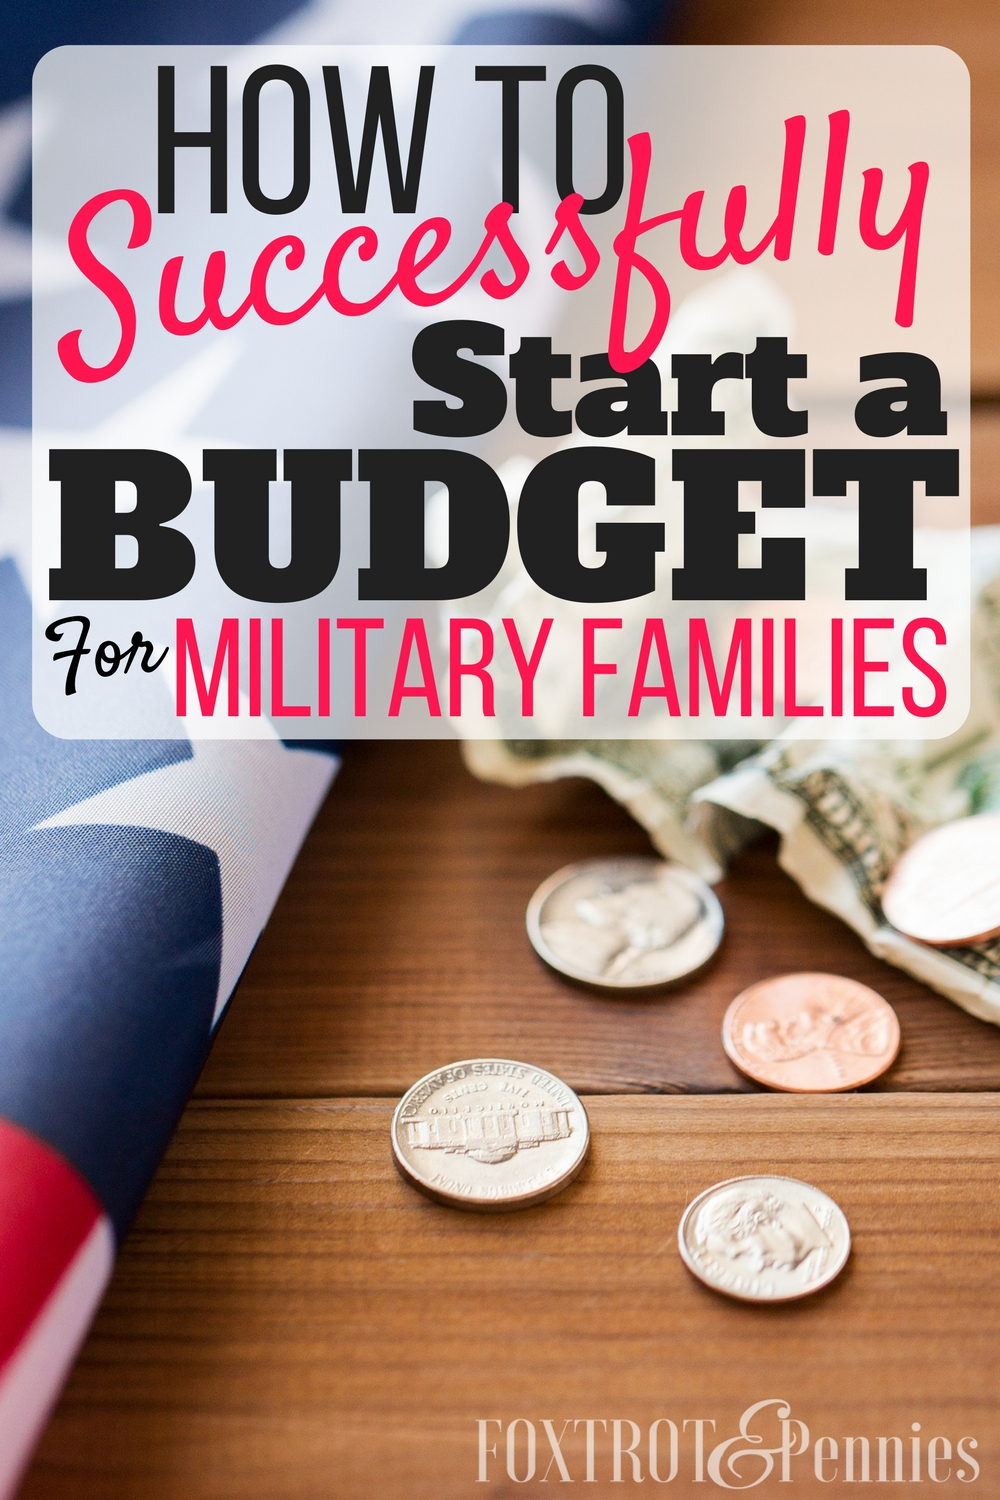 I could never seem to stick to a budget before this! Finally, I'm able to keep my finances organized. This article shows you exactly how to start a budget that your military family can actually stick to and start saving money!